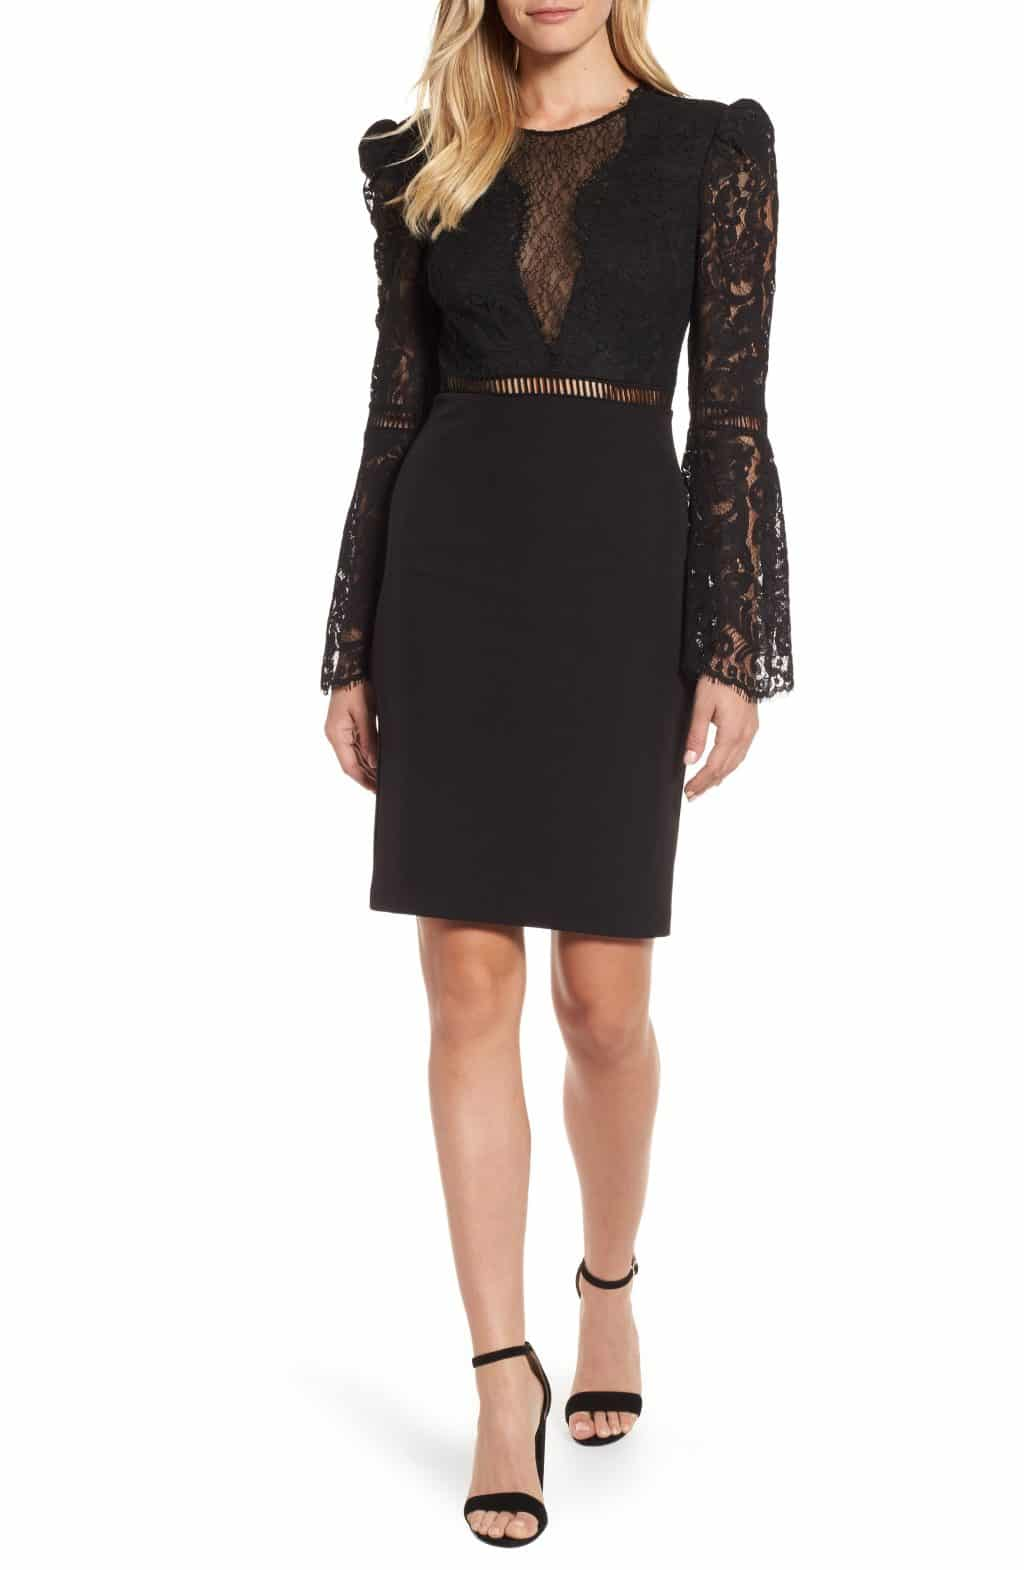 BARDOT Lace Bodice Cocktail Black Dress